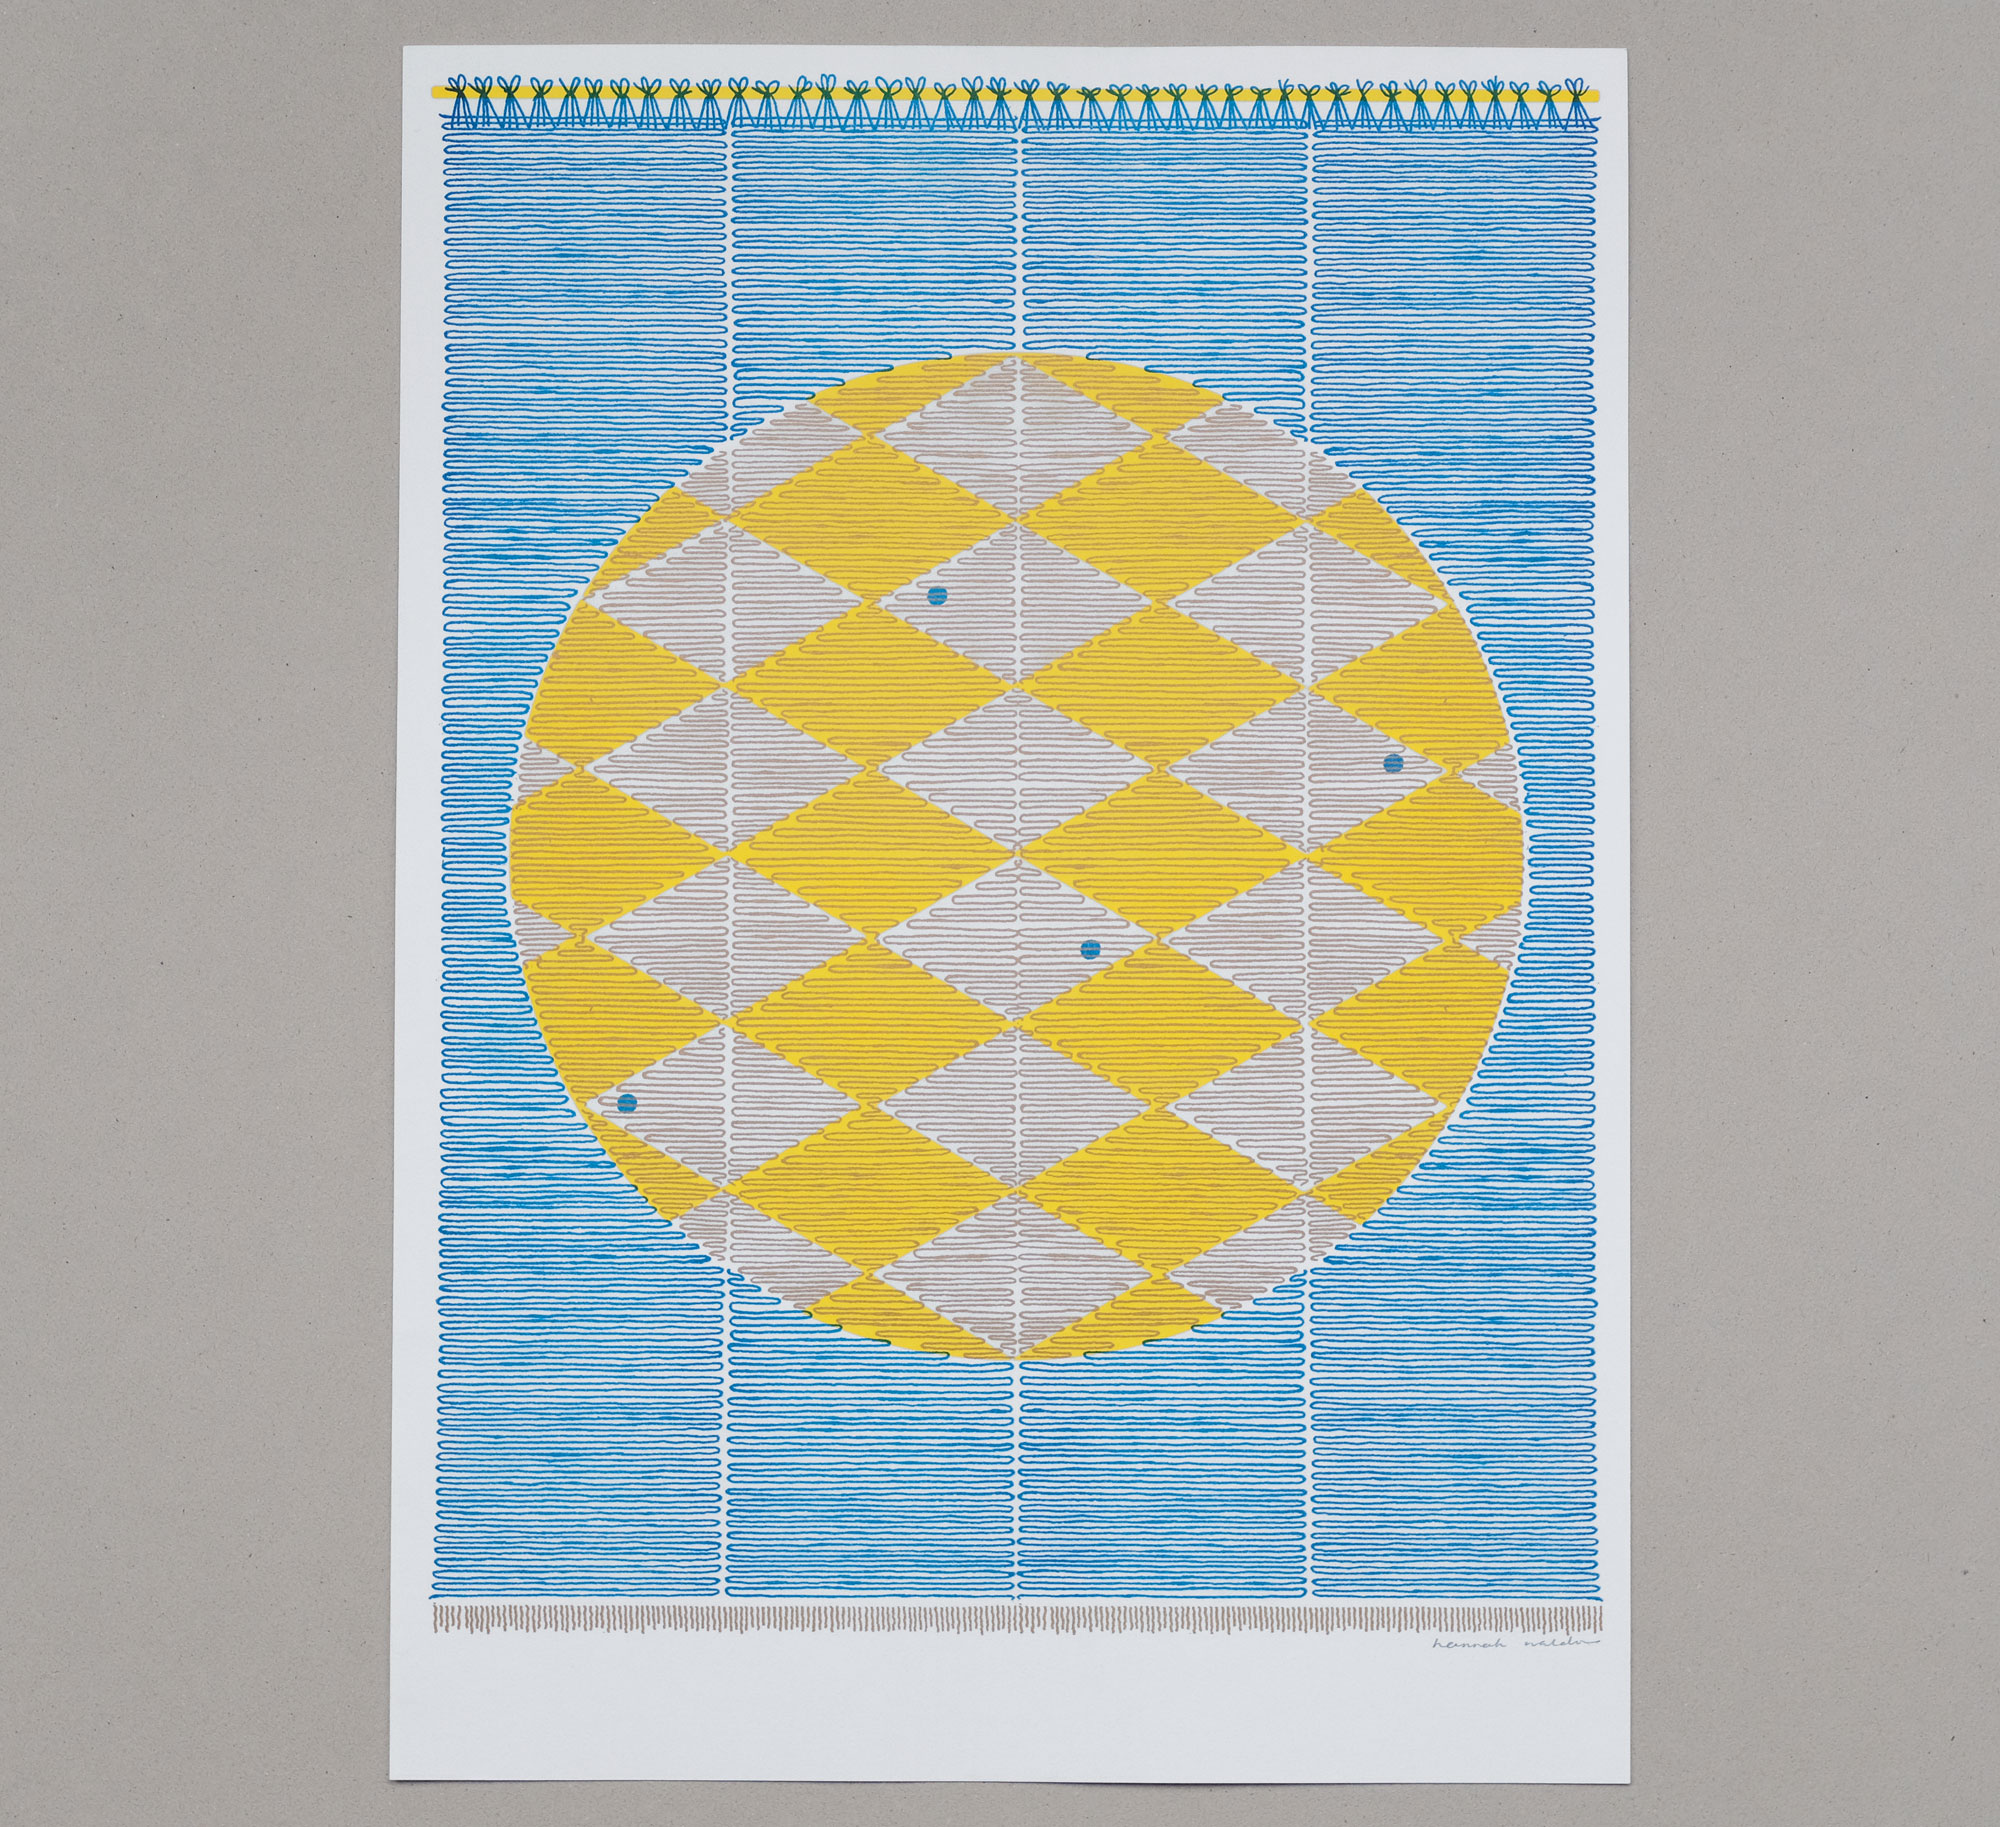 *NEW* Sun Screen risograph print